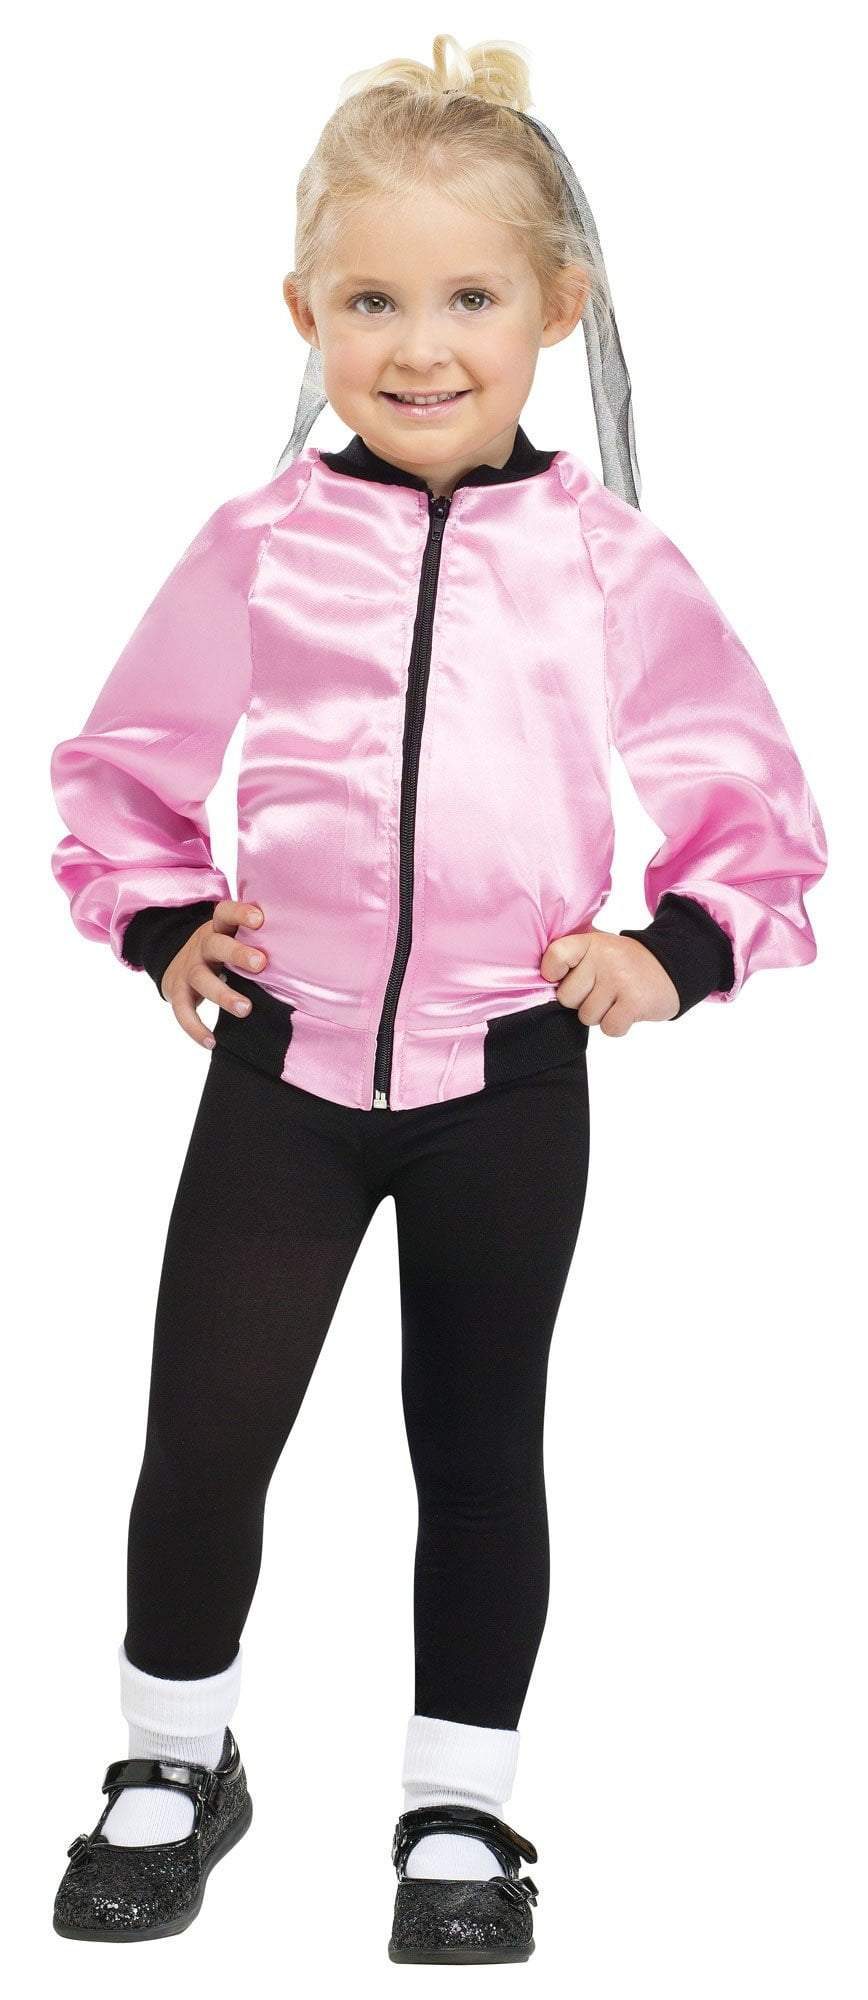 Fun World Costumes Toddler Girls 50s Pink Ladies Jacket